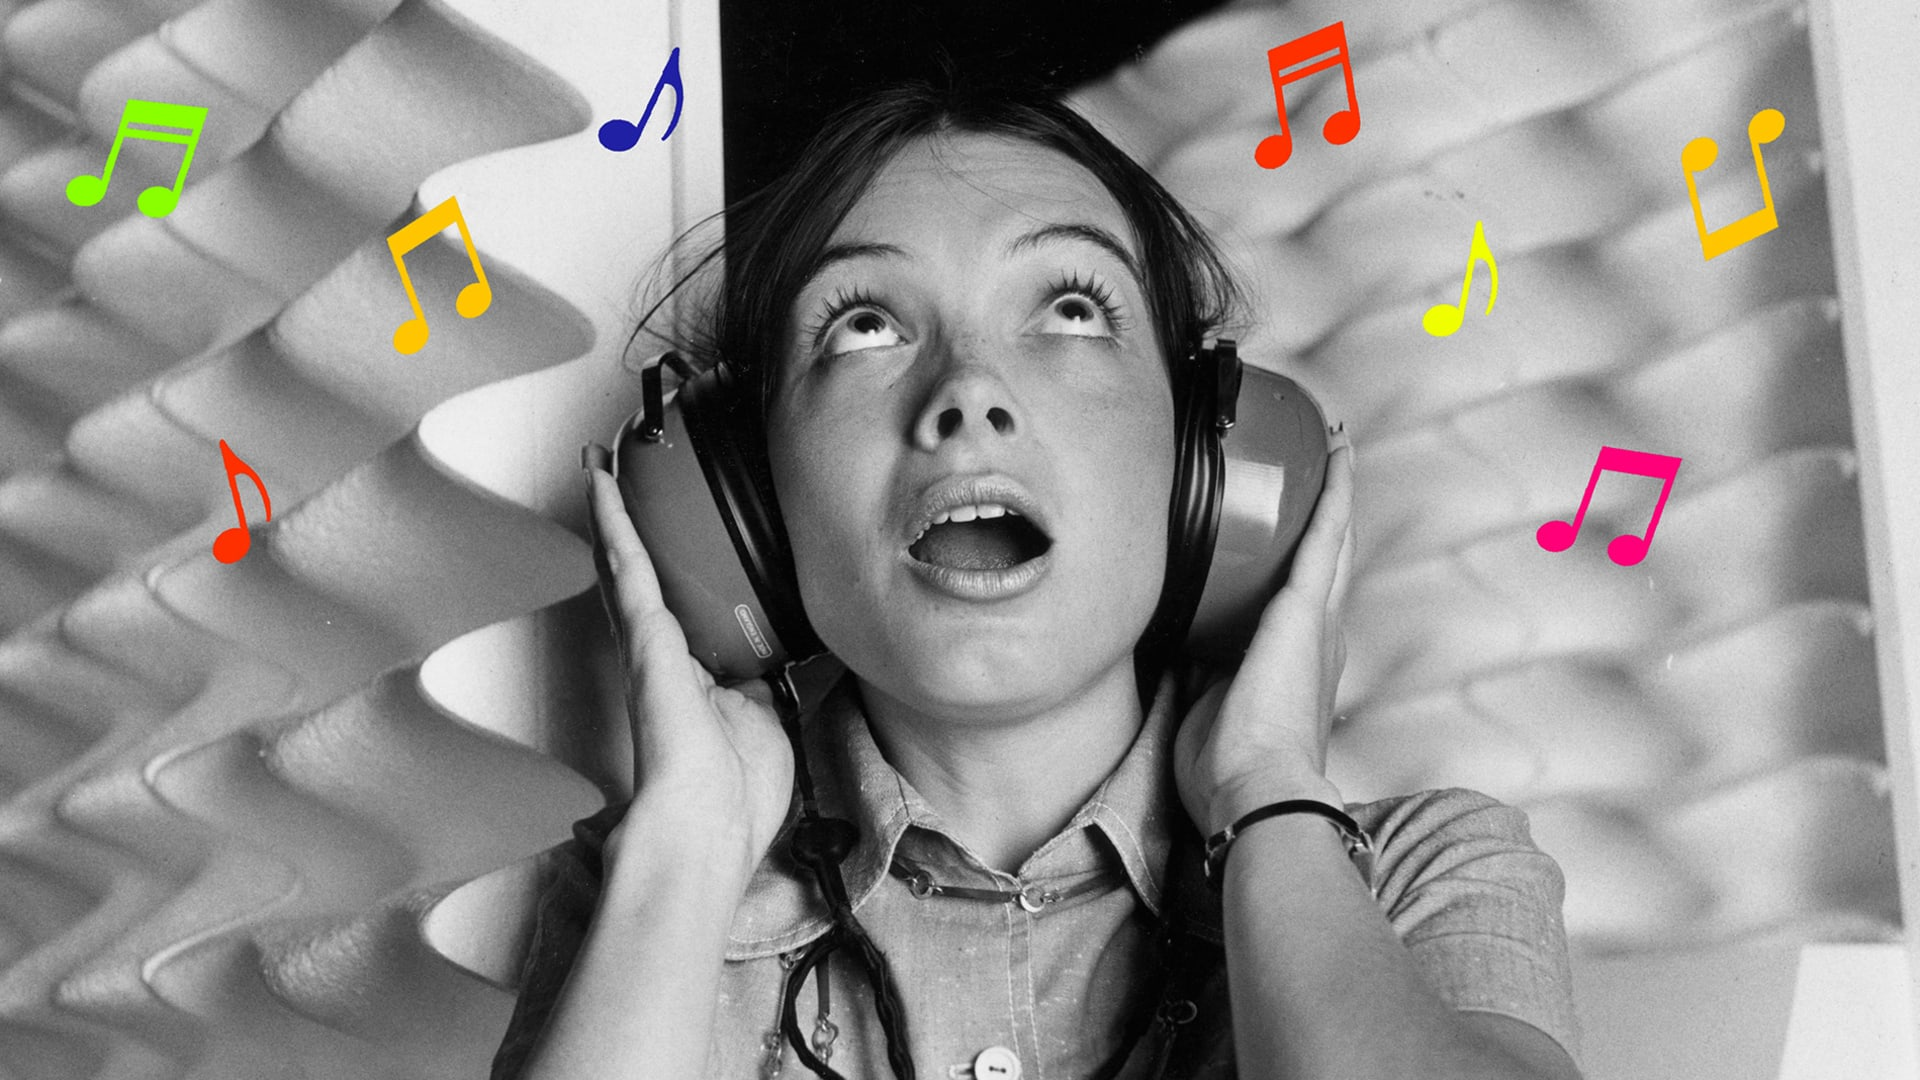 Researchers Combed Through Thousands of Songs and Found This 1 Word Predicts a Hit